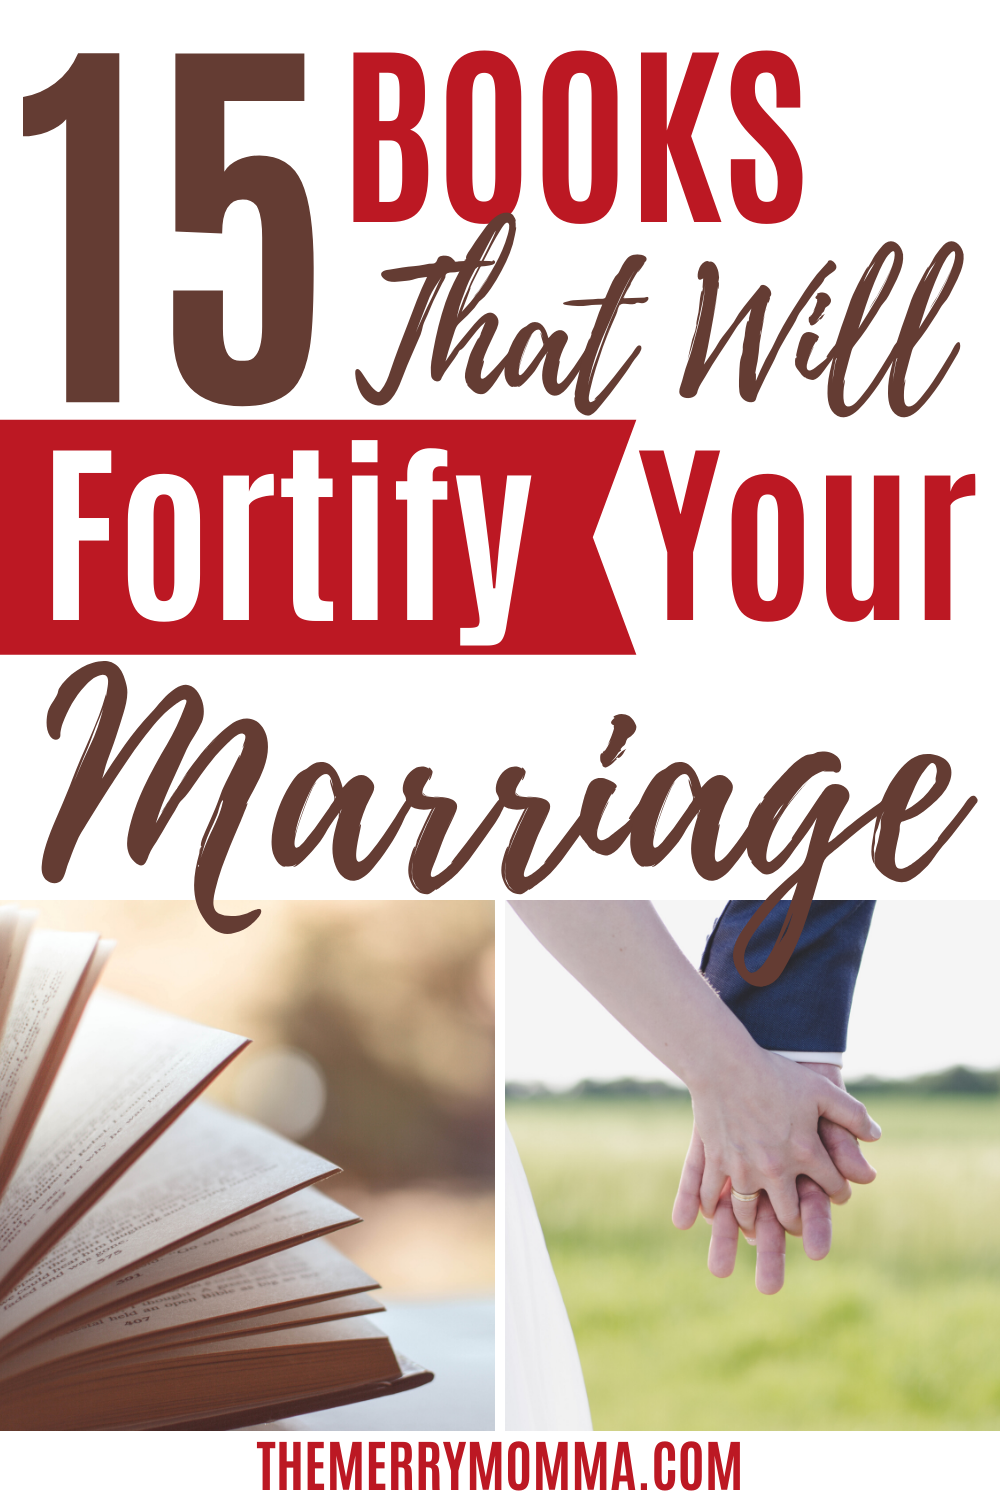 15 Books That Will Fortify Your Marriage